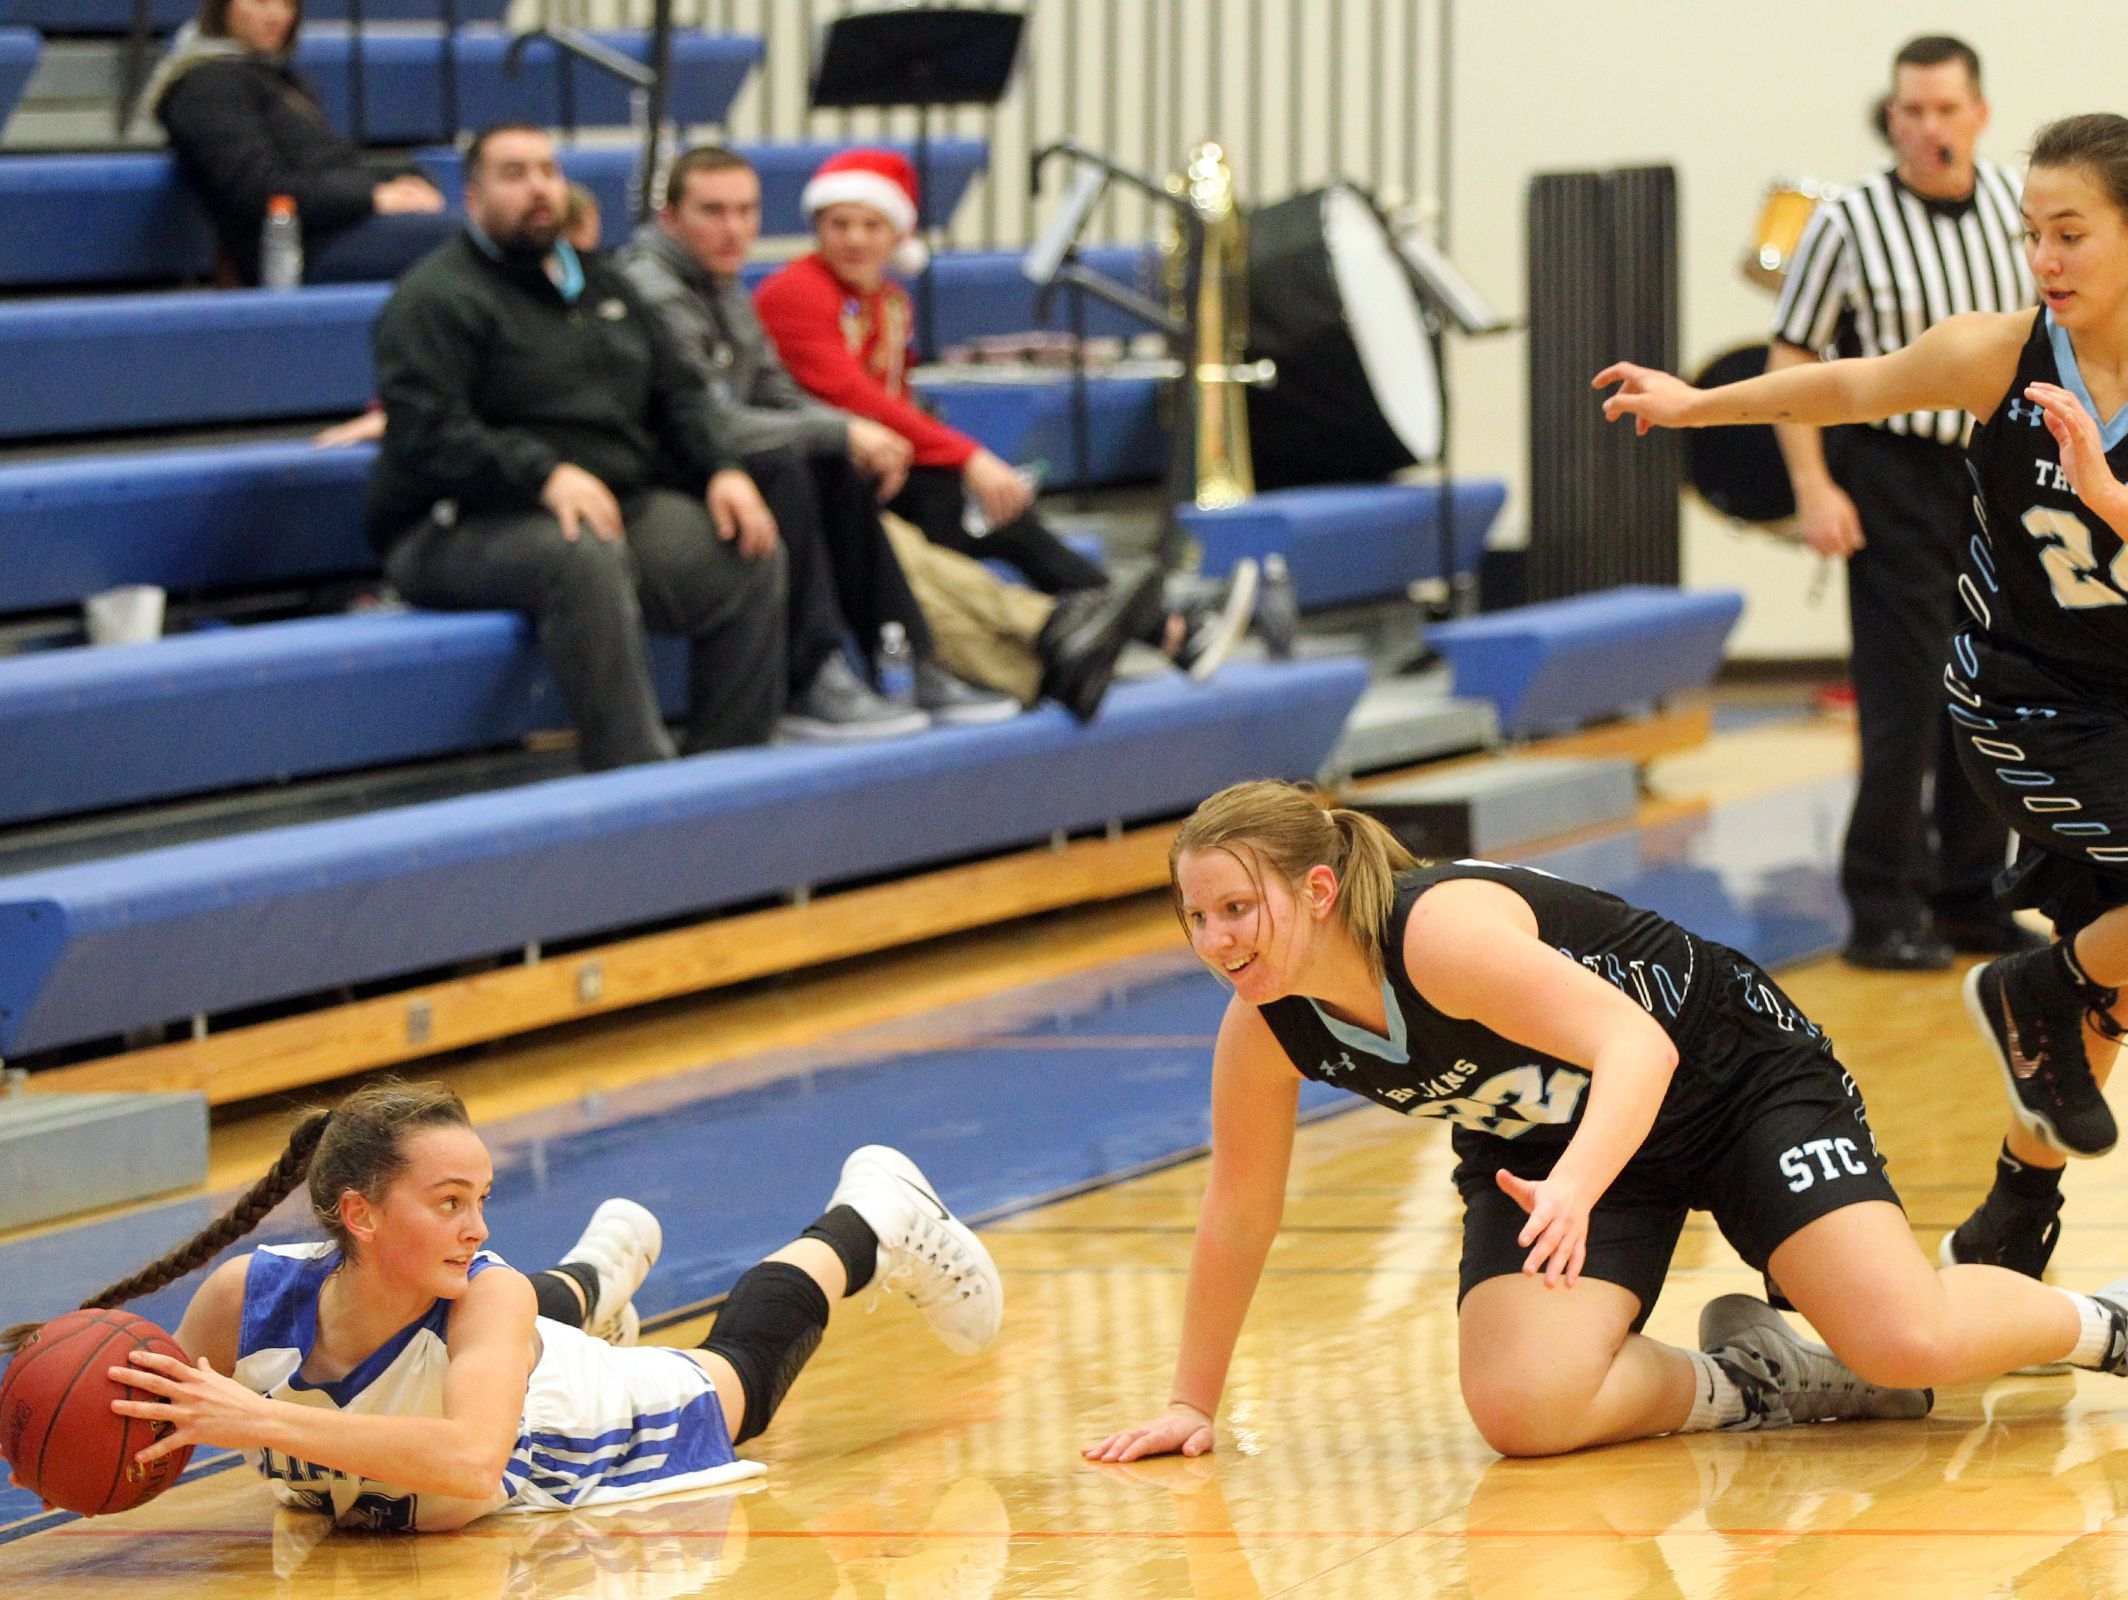 Clear Creek Amana's Karsyn Stratton dives for the ball during the Clippers' game against South Tama in Tiffin on Monday, Dec. 19, 2016.